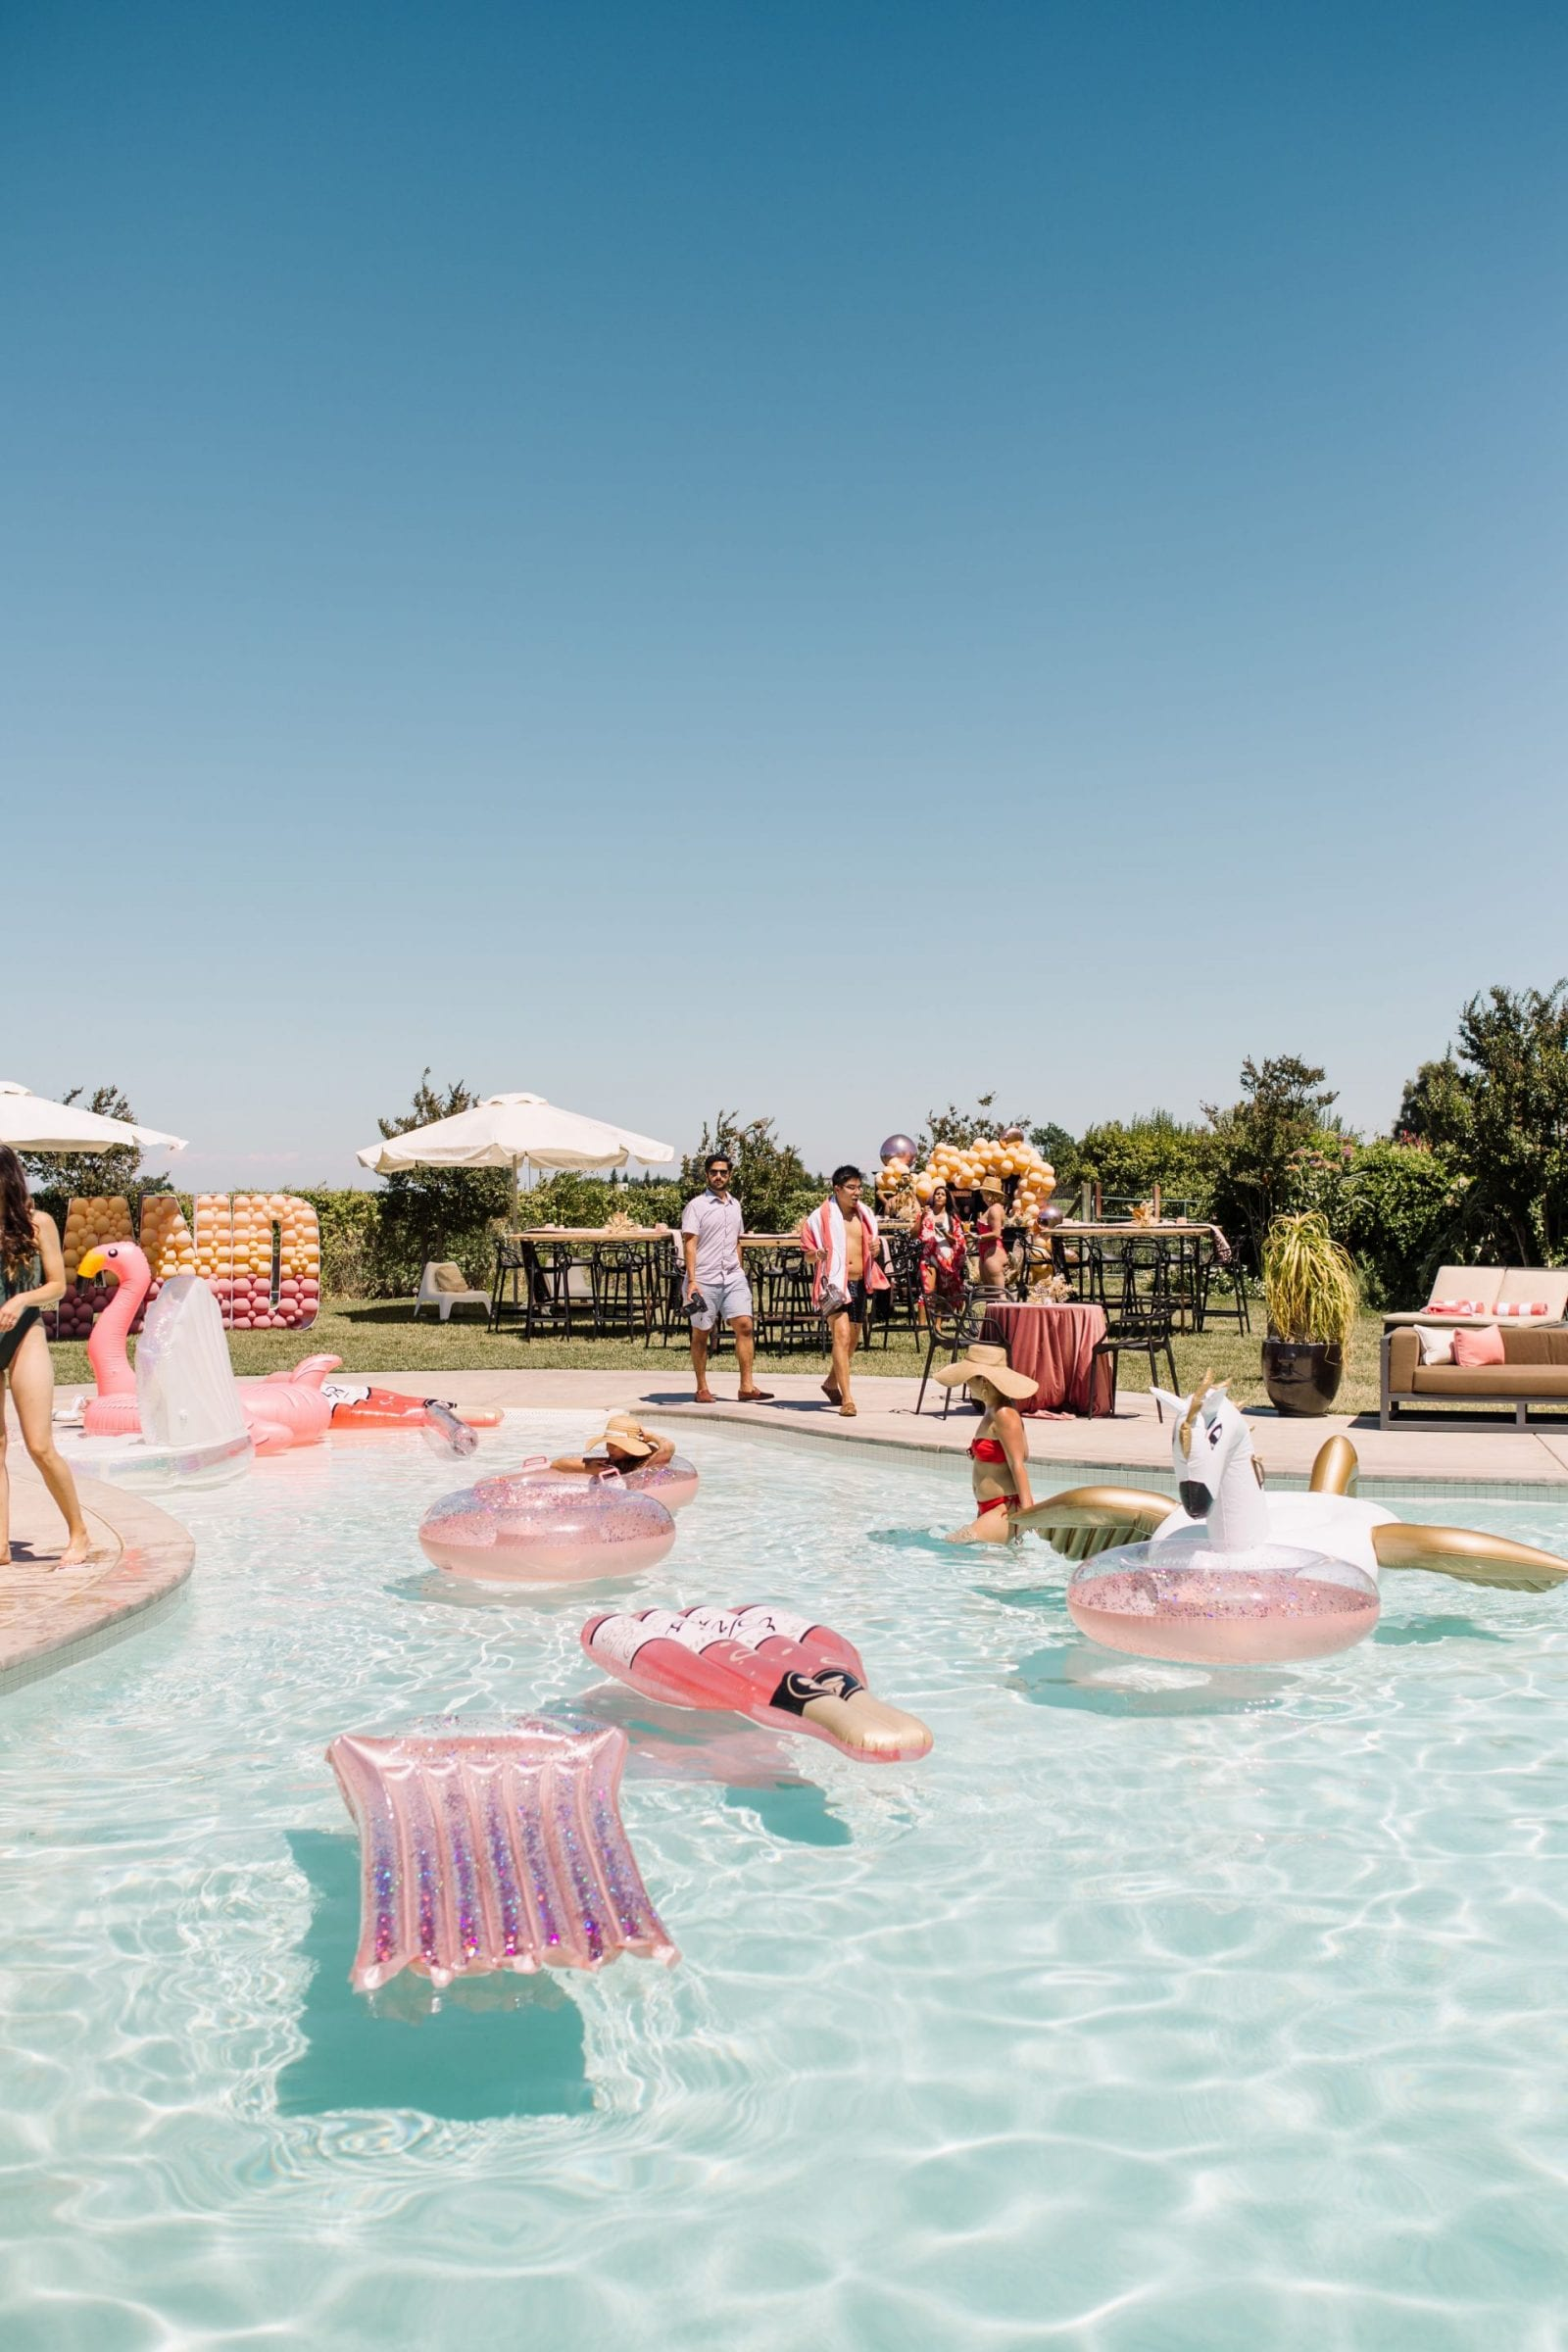 Park Winters Summerland 2019 | Summer Pool Party Inspiration | Fashion Blogger | Wedding Inspiration | SarahMichiko.com